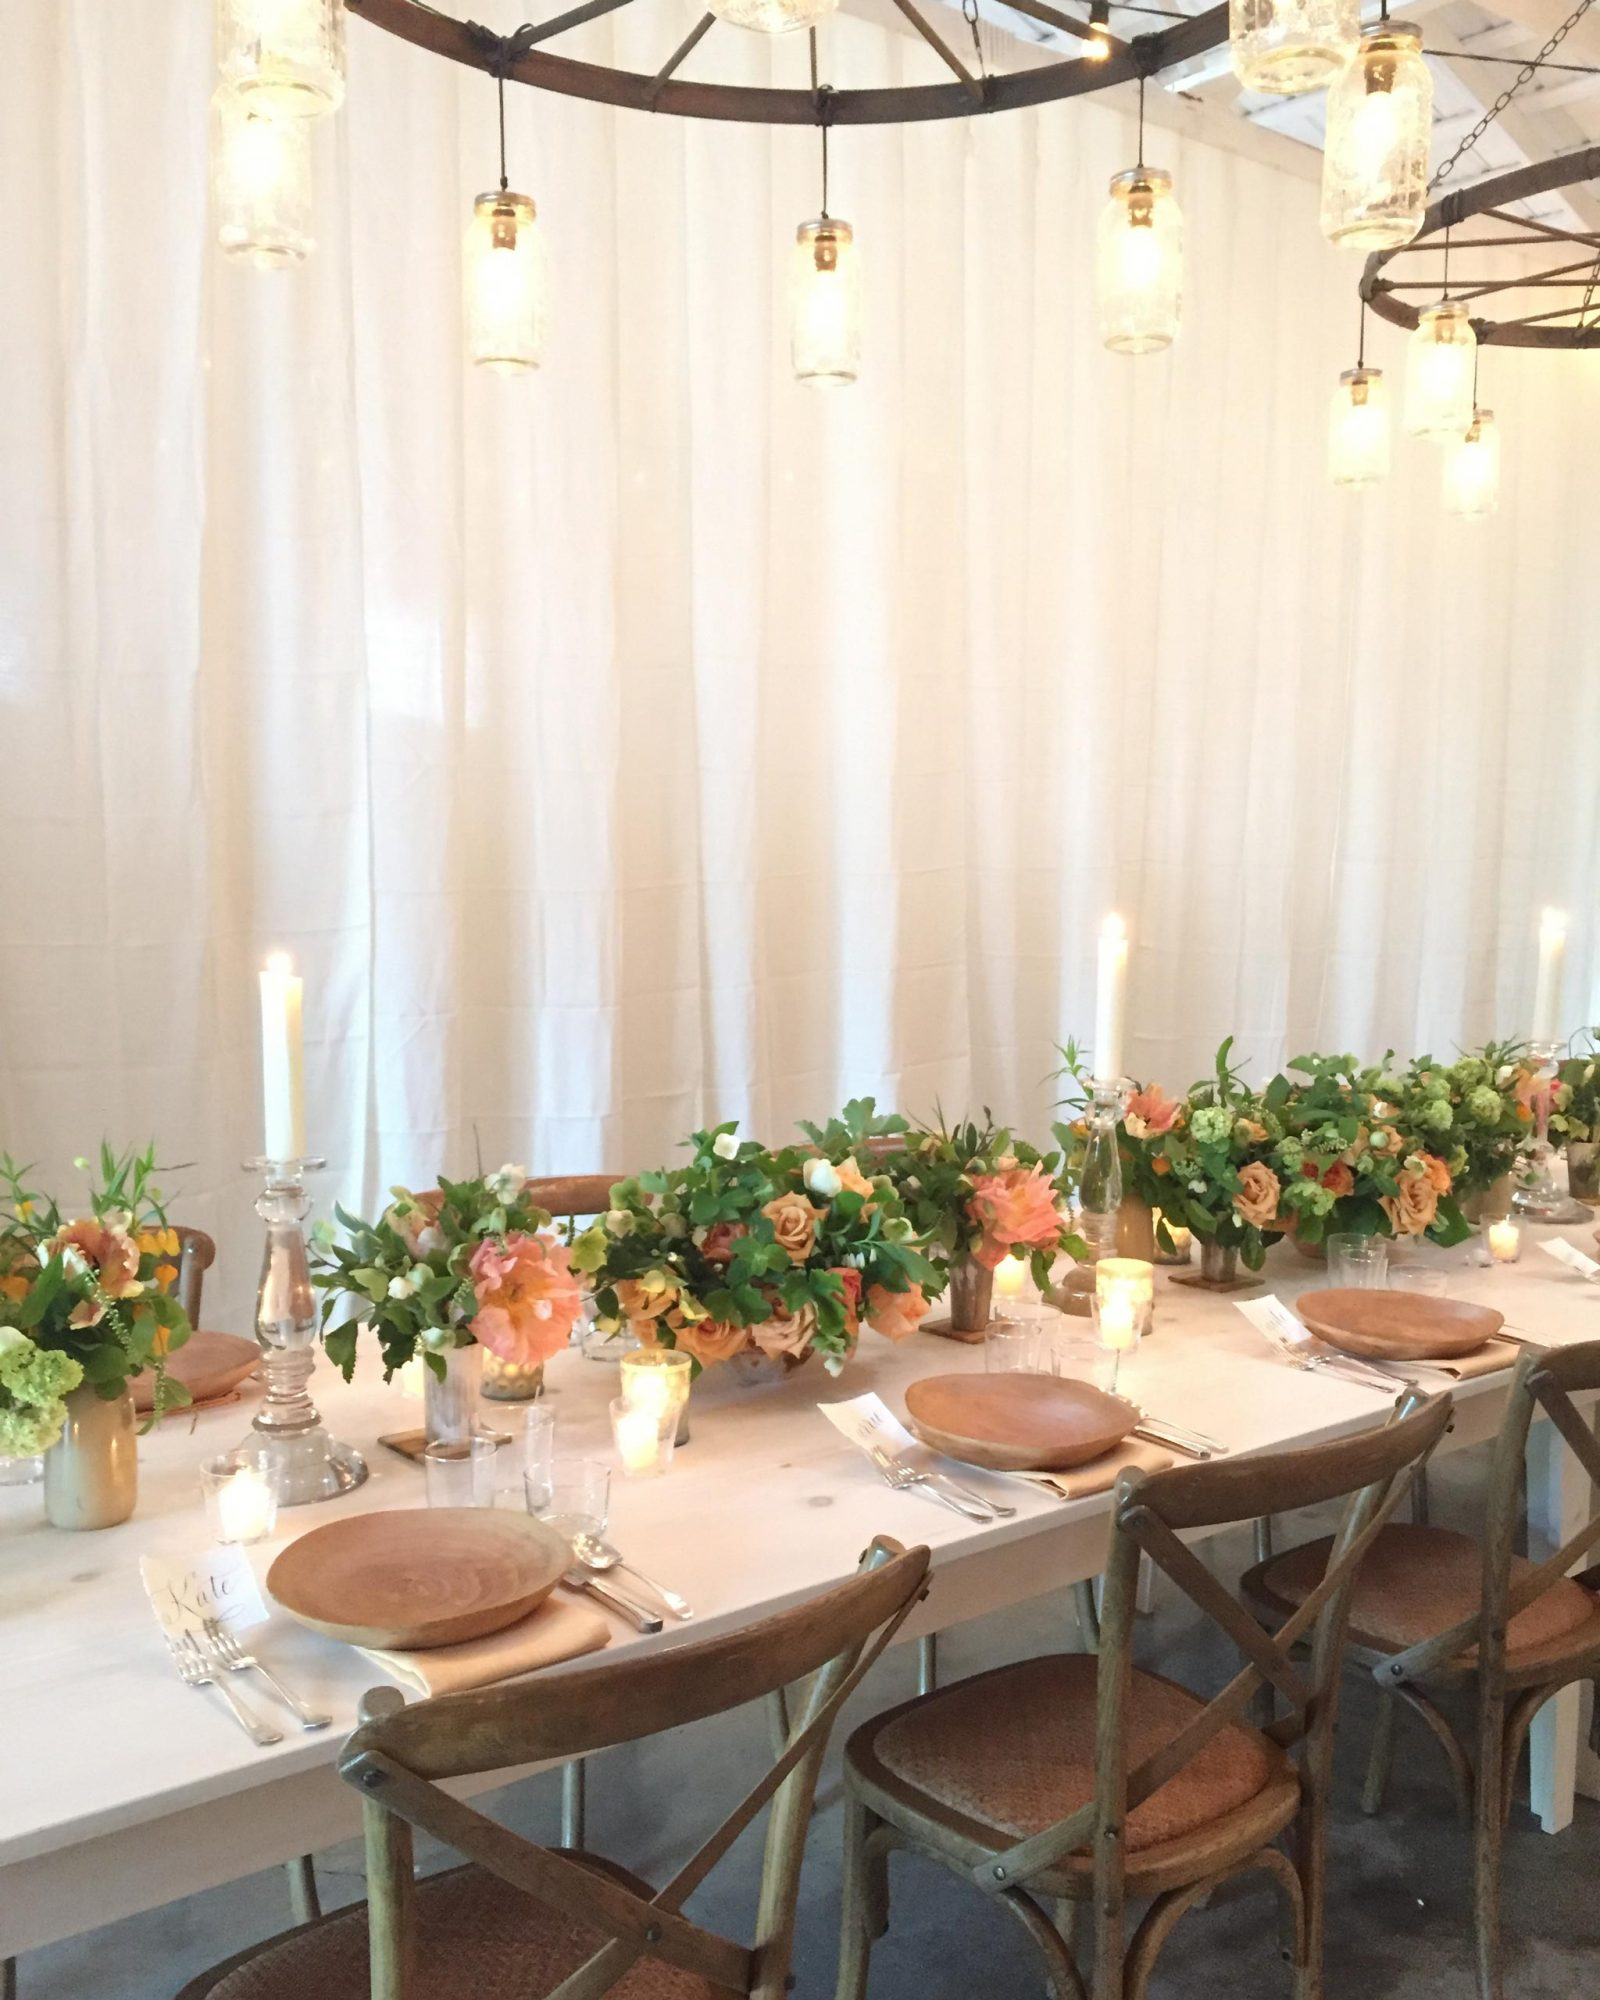 beehive-events-a-pimento-catering-charlottesville.jpg